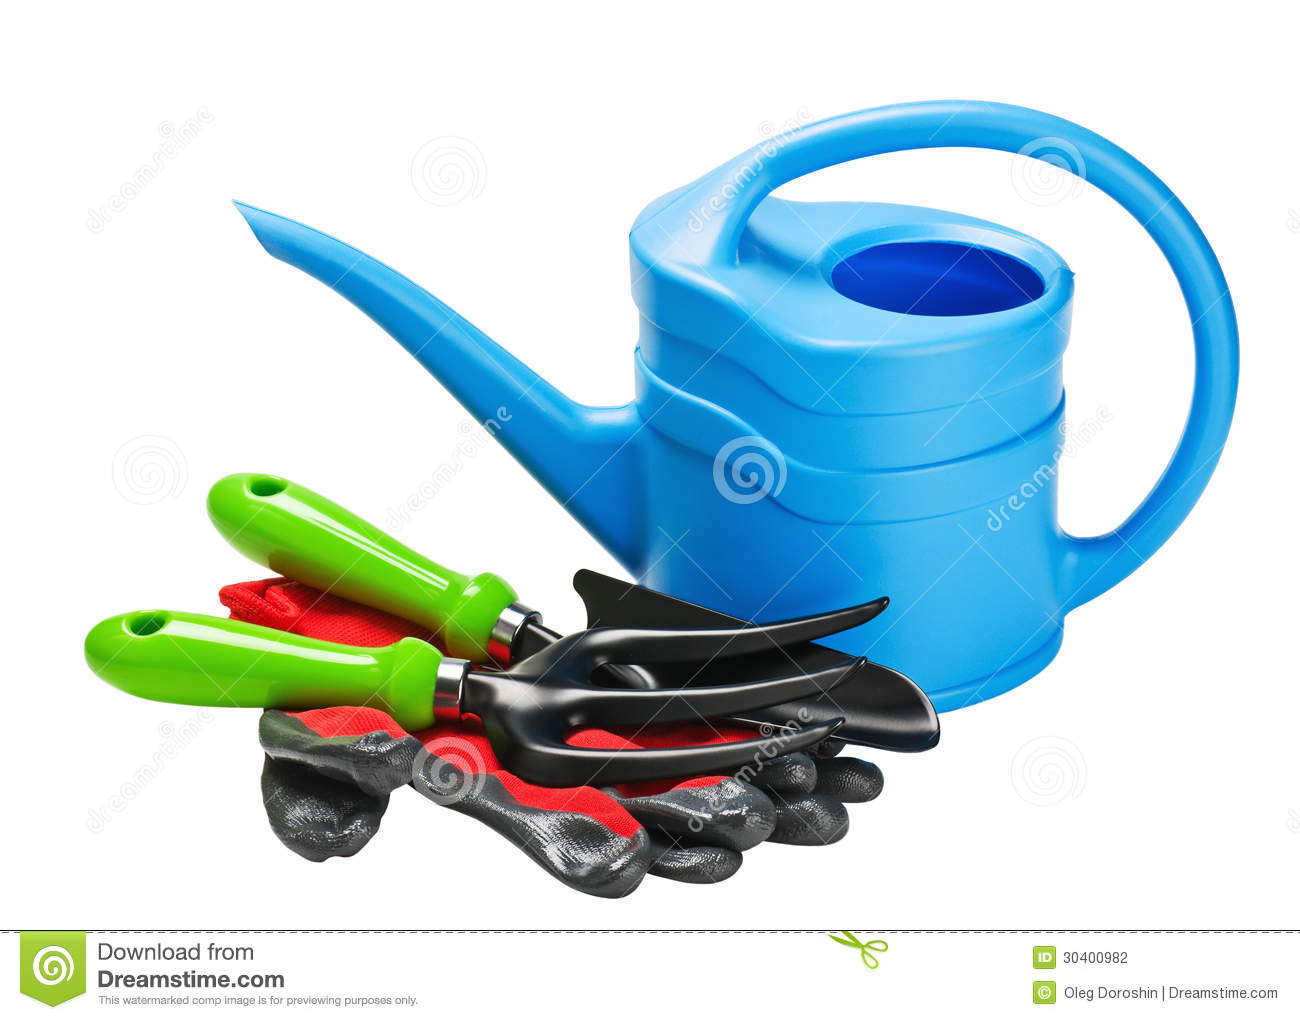 Garden tools and accessories stock photography image for Gardening tools and accessories